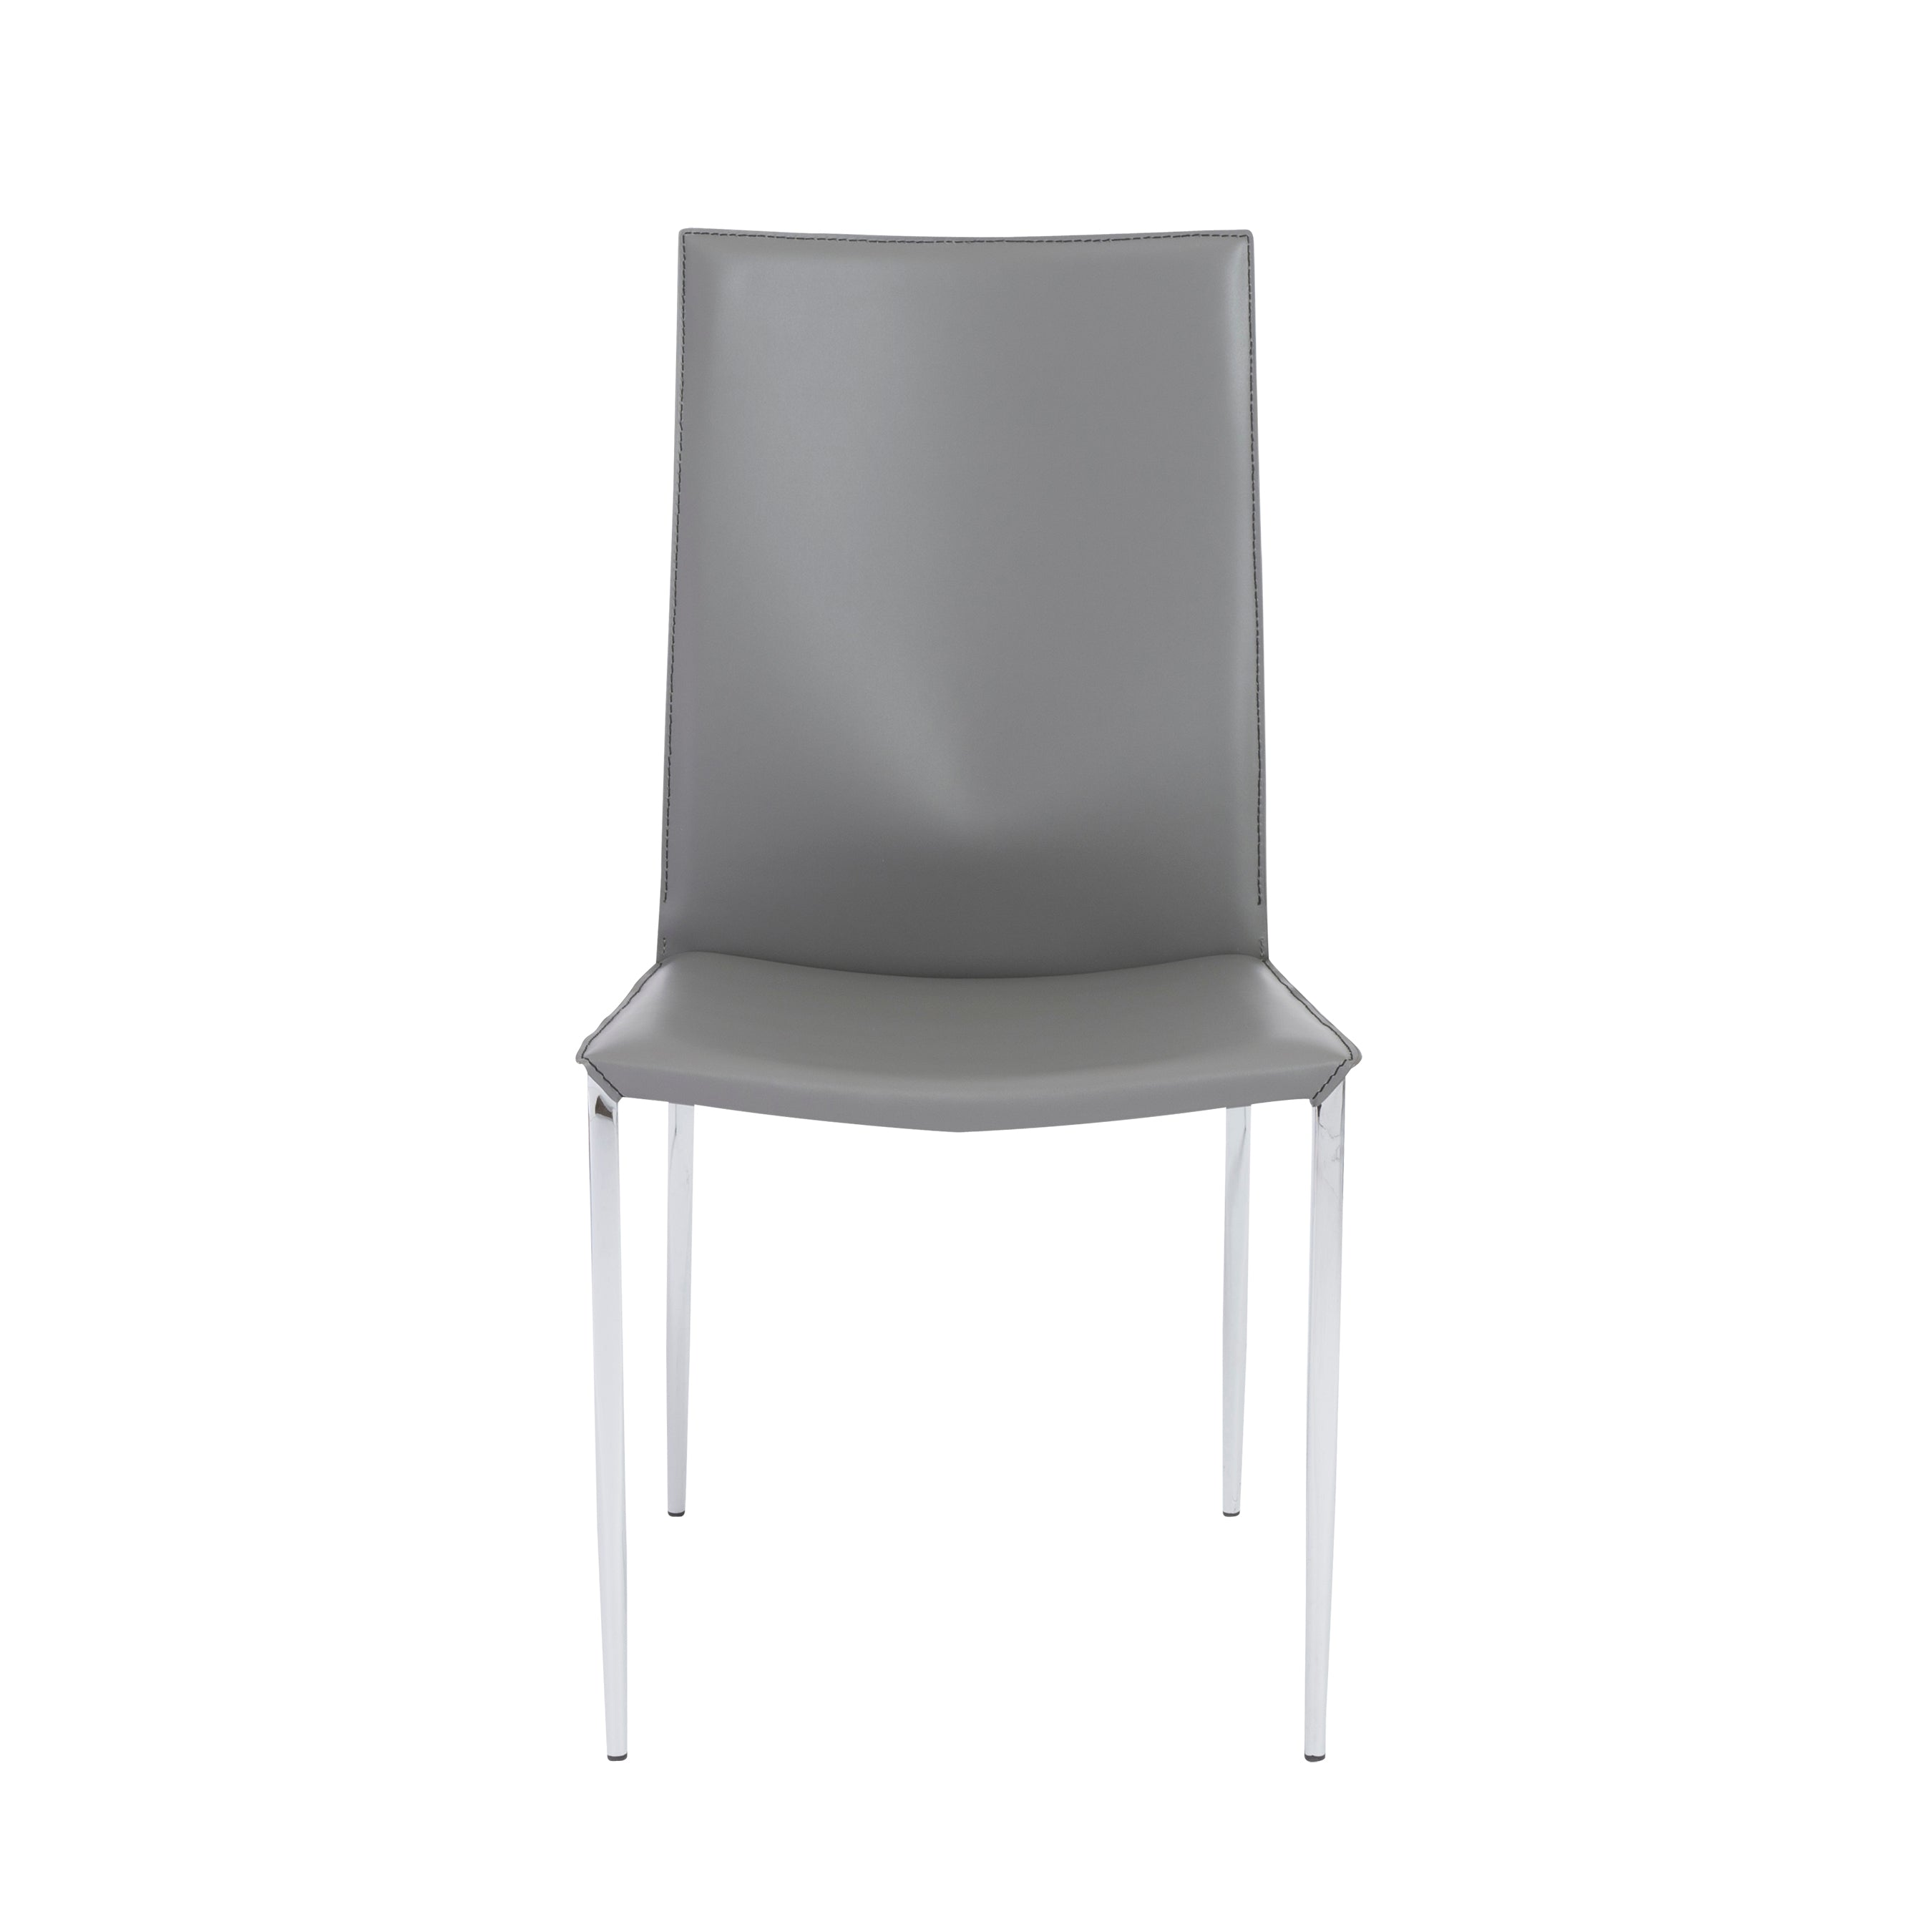 Tasteful Gray Leather Guest or Conference Chair (Set of 2)